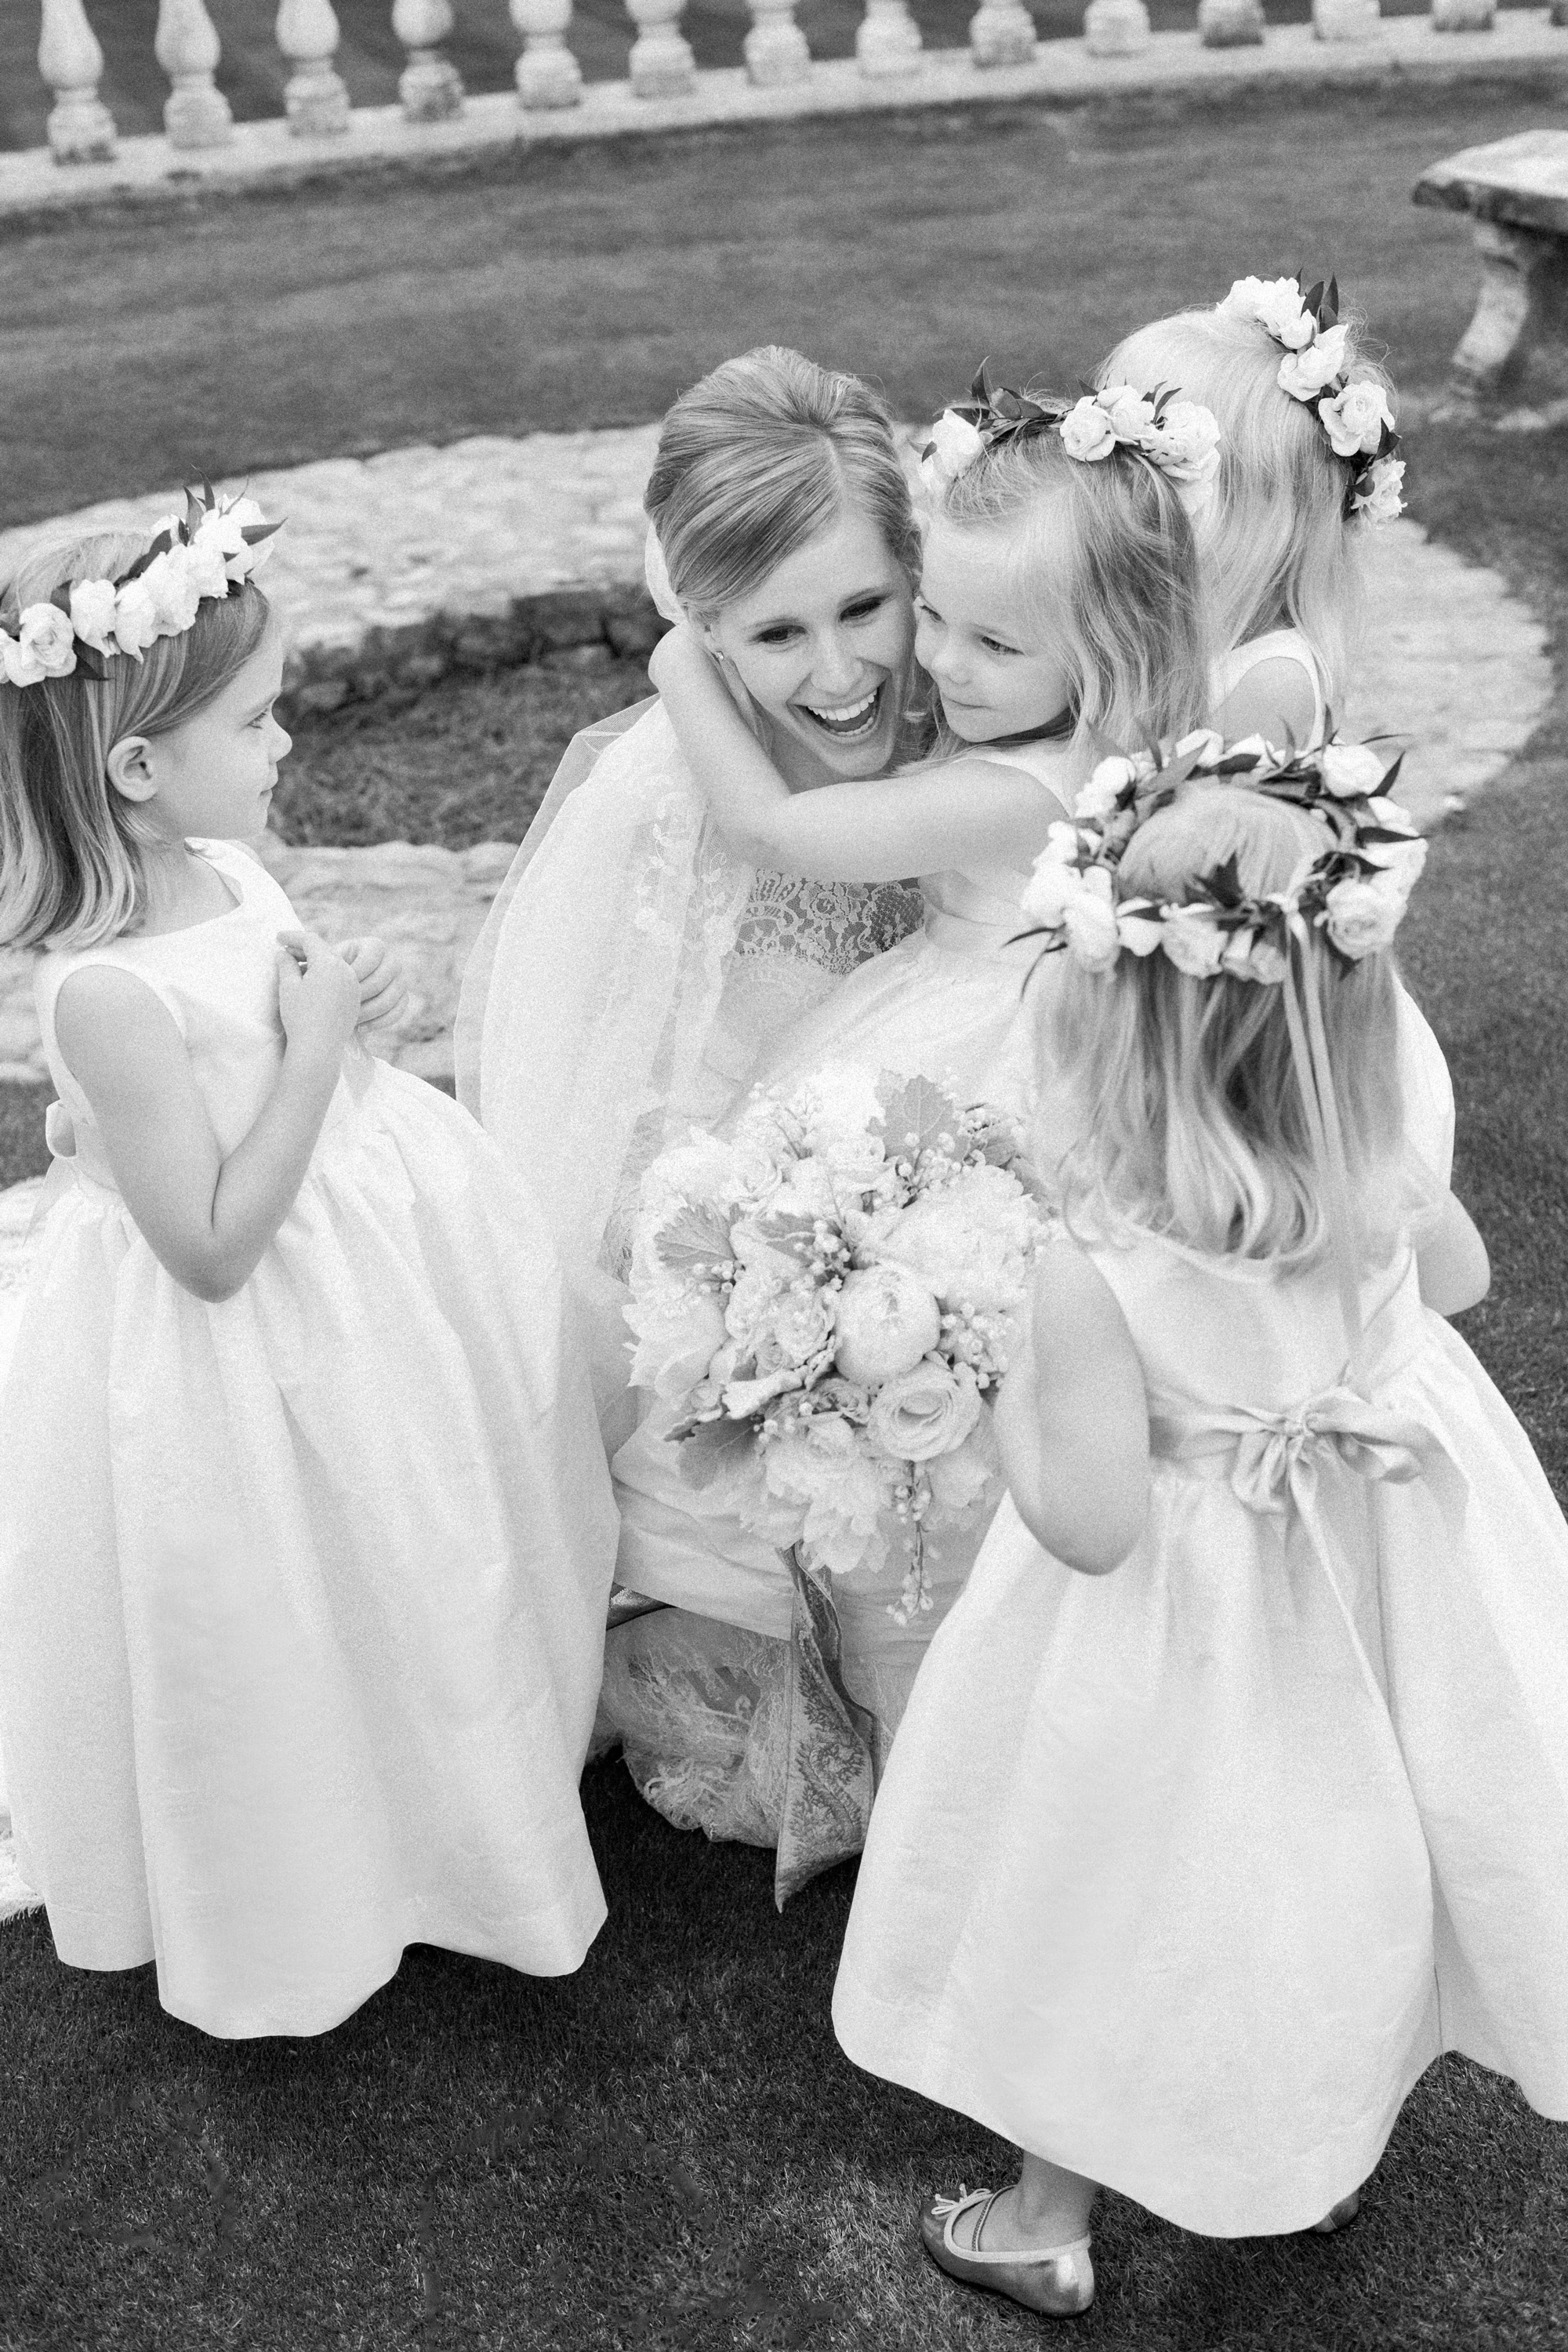 How to Manage Multiple Flower Girls and Ring Bearers at Your Wedding